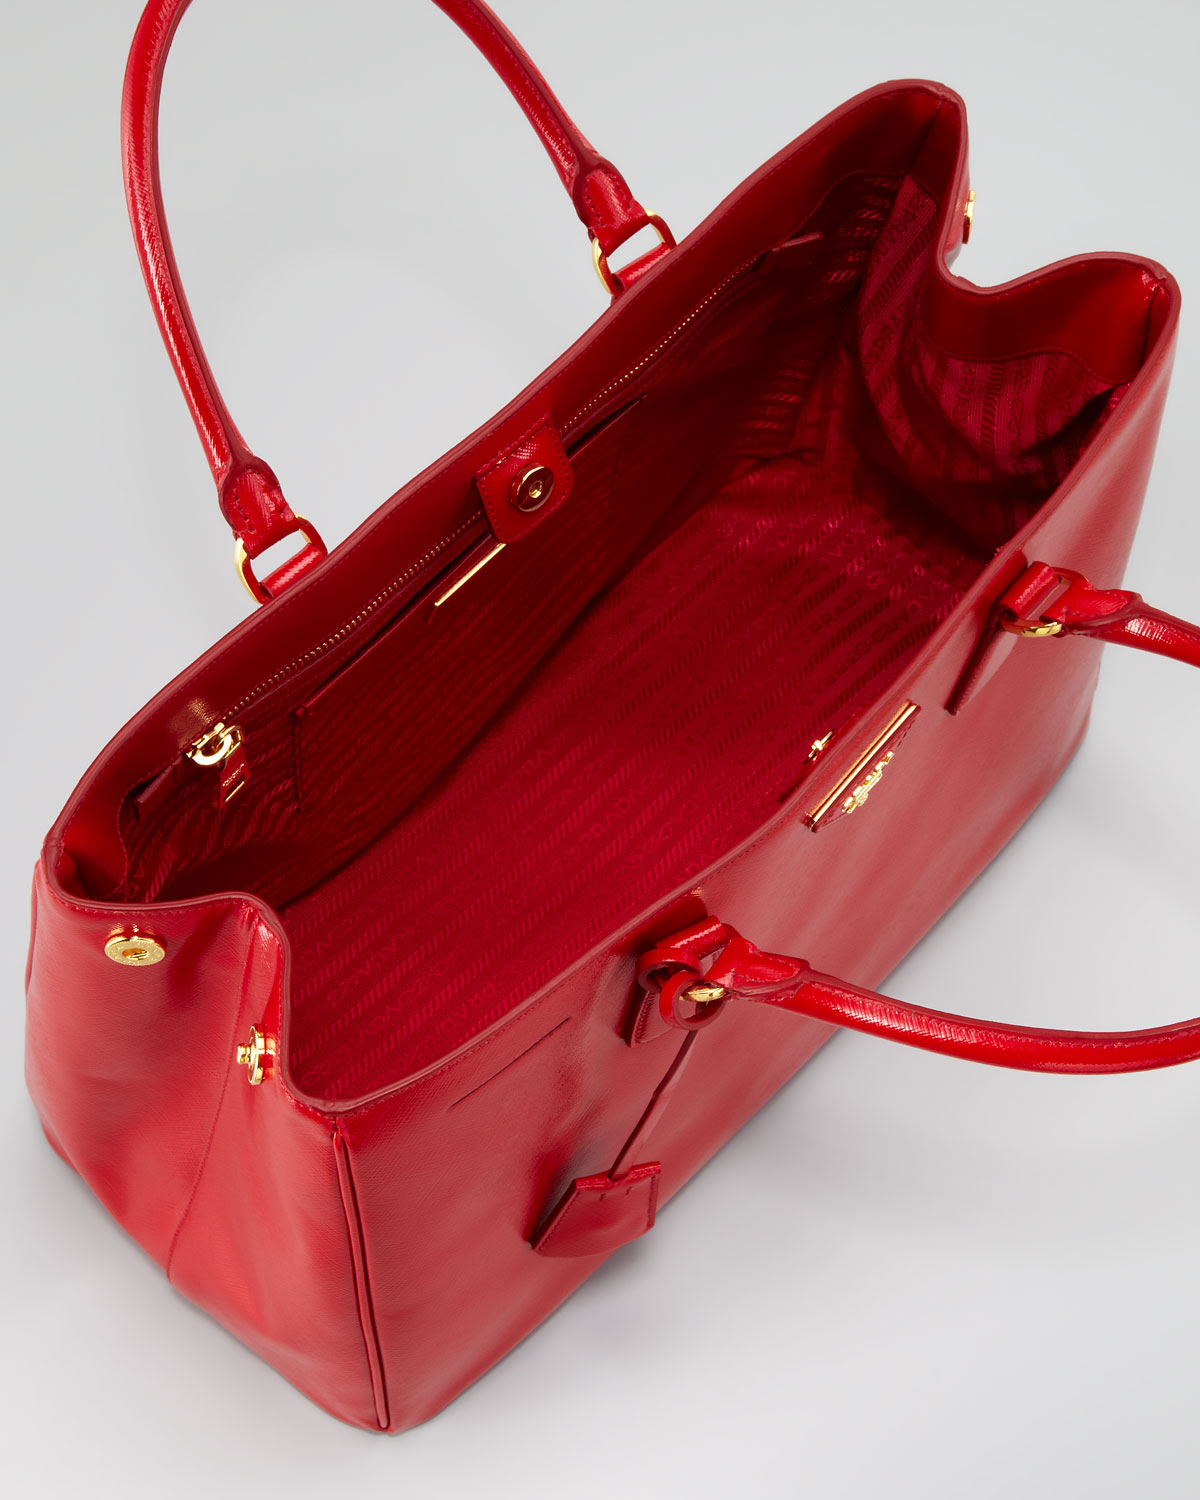 d5878d0477b3 coupon for prada saffiano vernice gardeners tote bag rosso in red lyst  93b54 69ecb